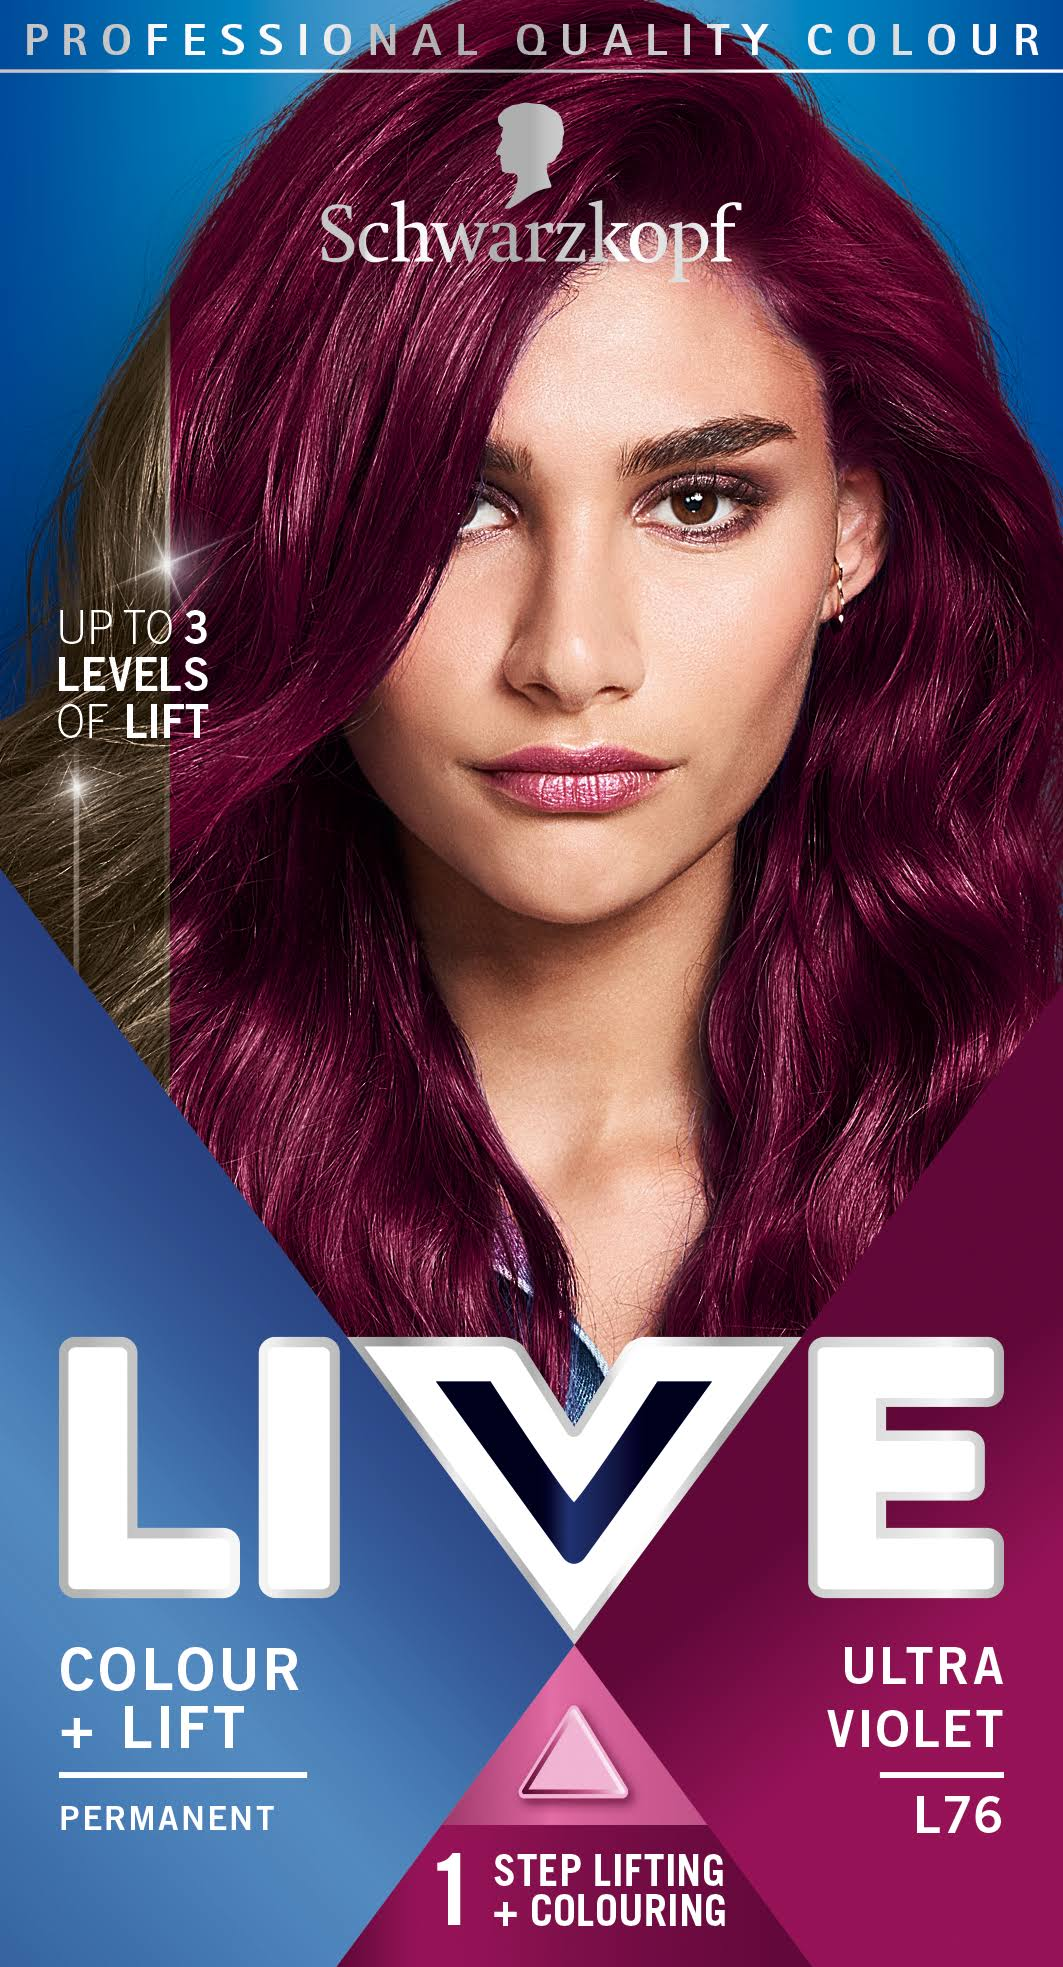 Schwarzkopf Live Intense Colour and Lift Permanent Hair Dye - L76 Ultra Violet